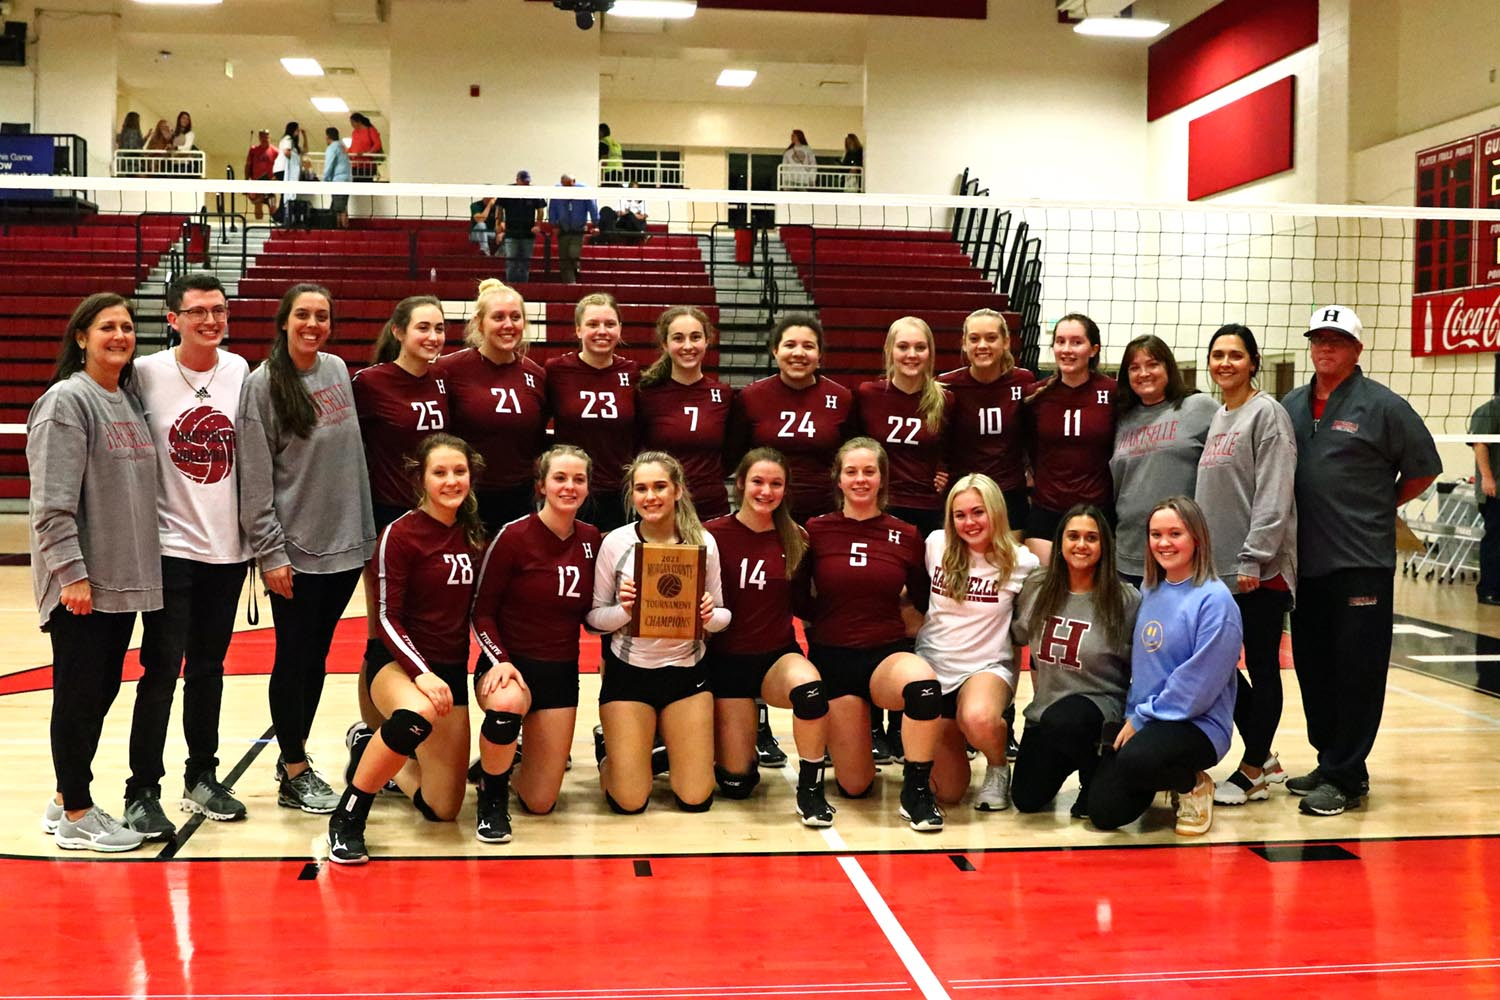 Lady Tigers win third straight Morgan County volleyball title